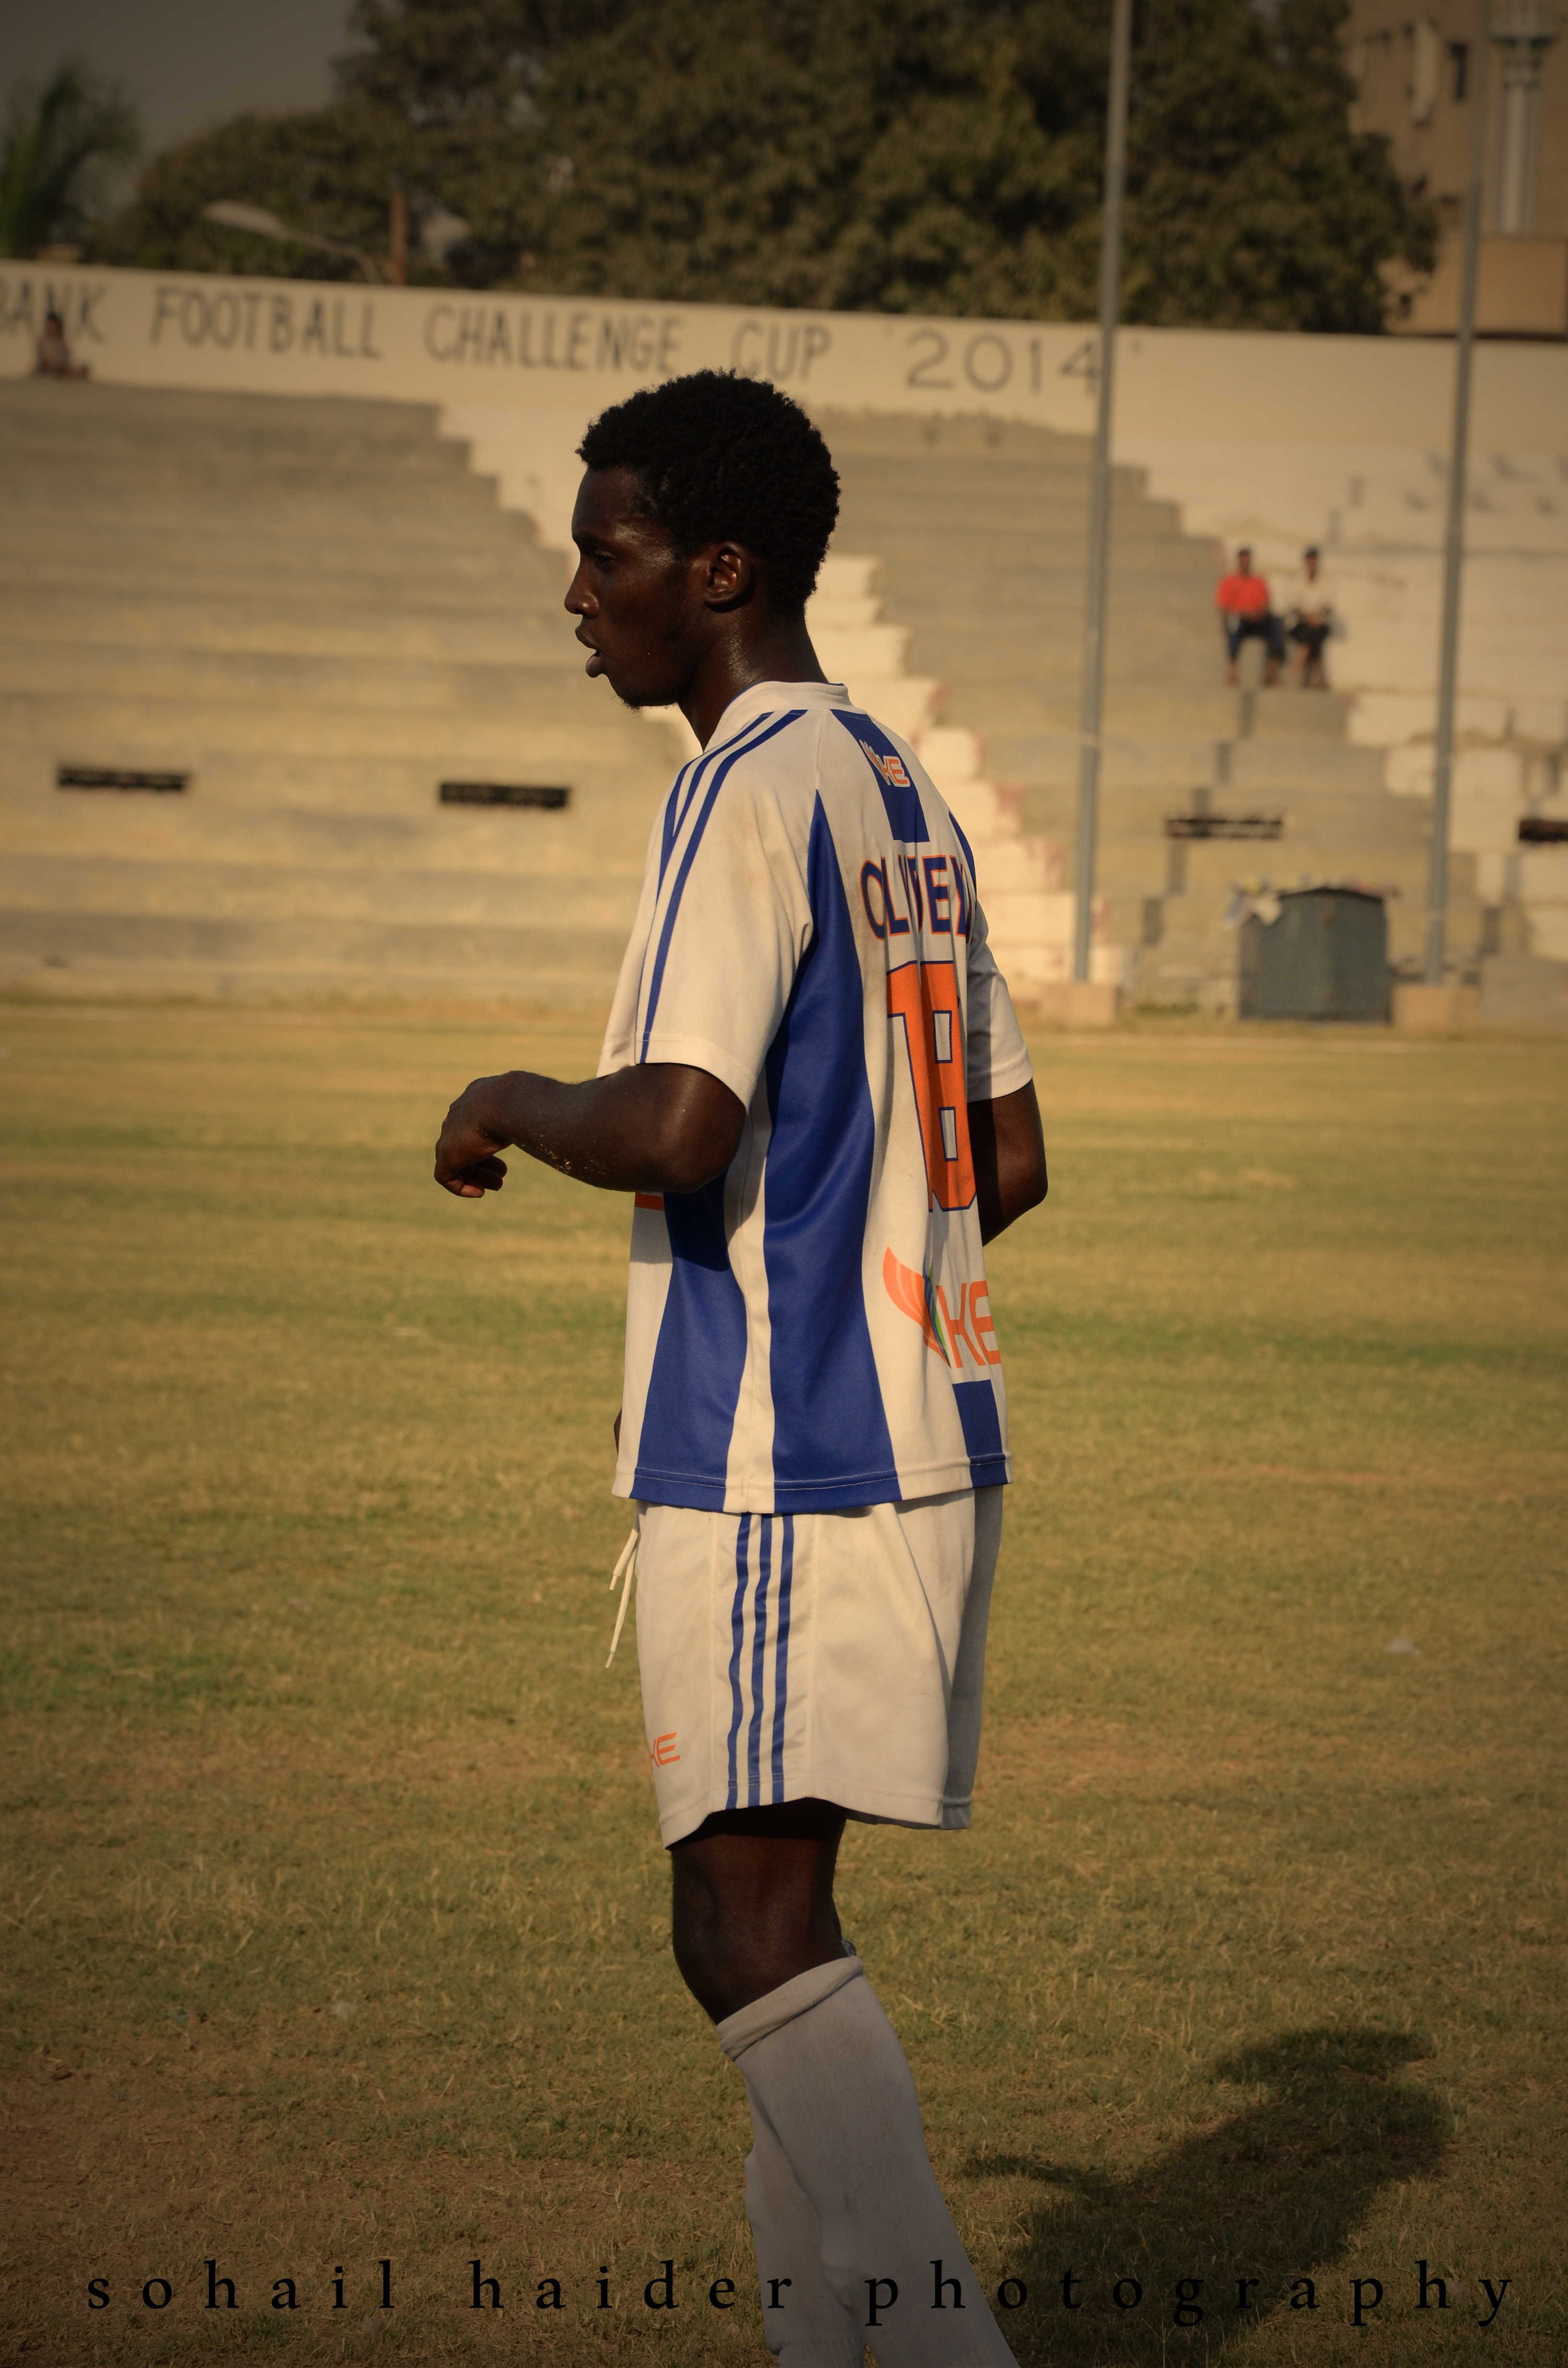 Oludeyi earns Pakistanis' respect [The News]